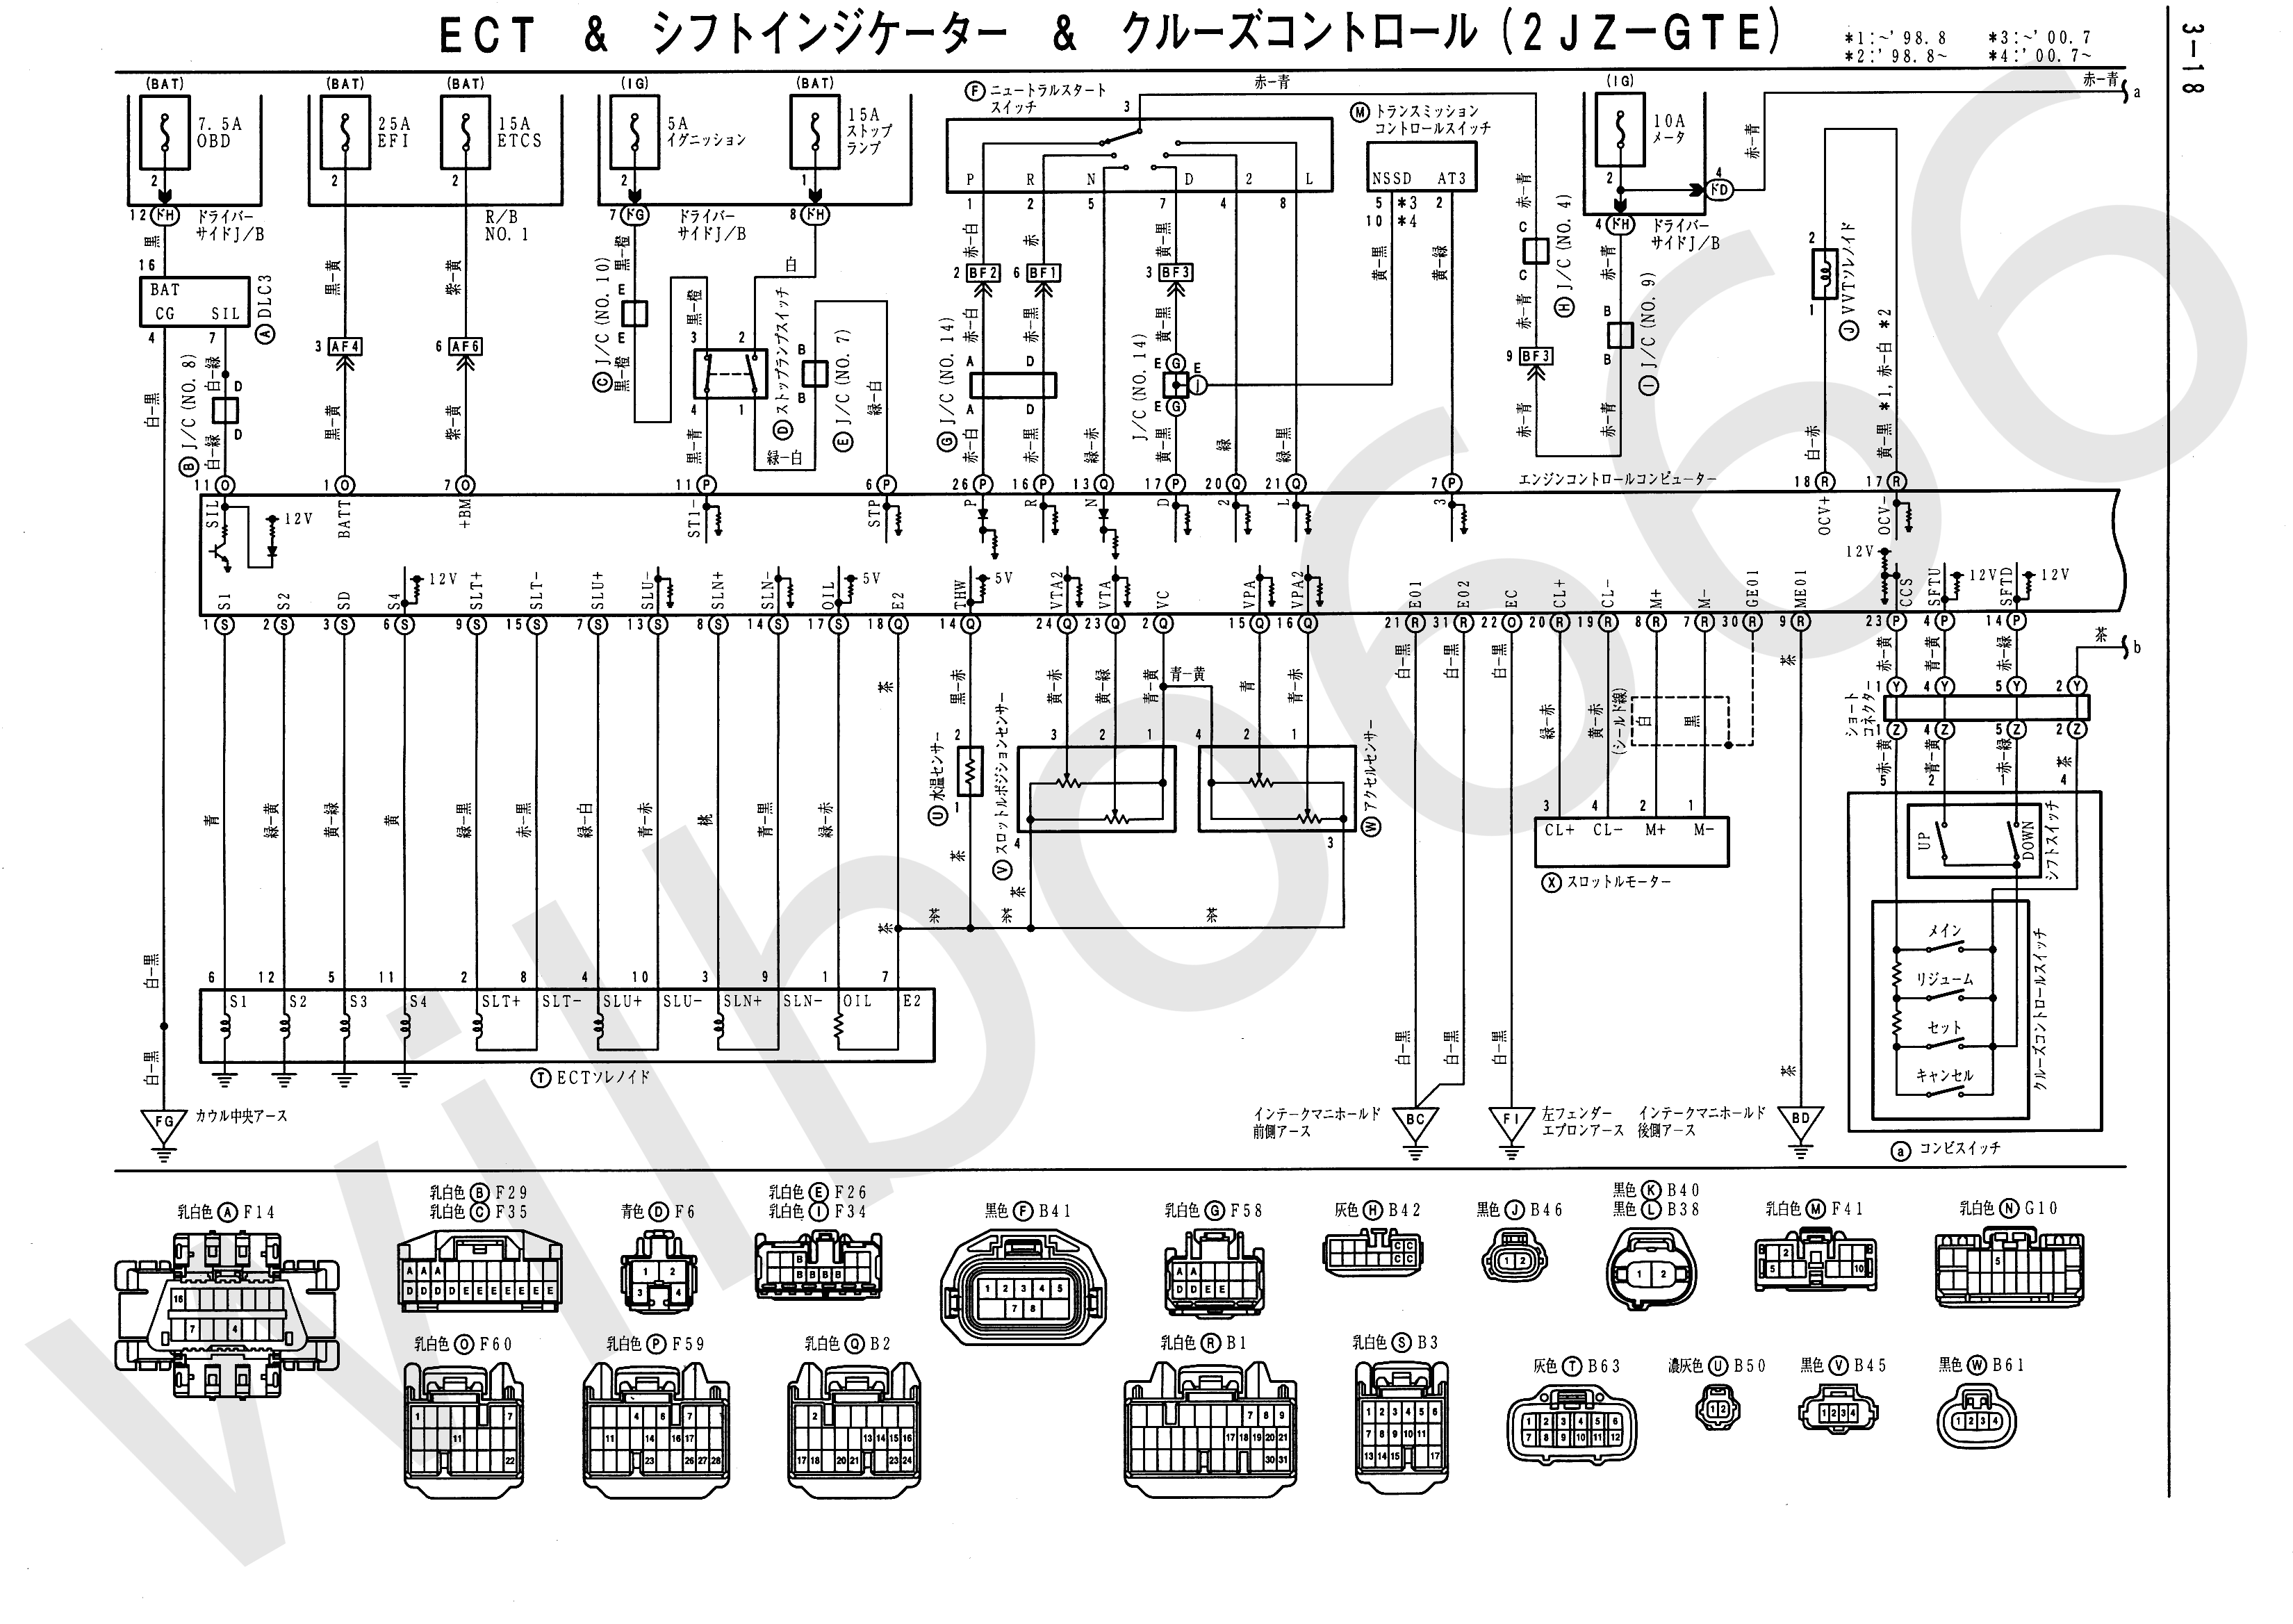 JZS161 Electrical Wiring Diagram 6748505 3 18 wilbo666 2jz gte vvti jzs161 aristo engine wiring 2jzgte wiring diagram at reclaimingppi.co